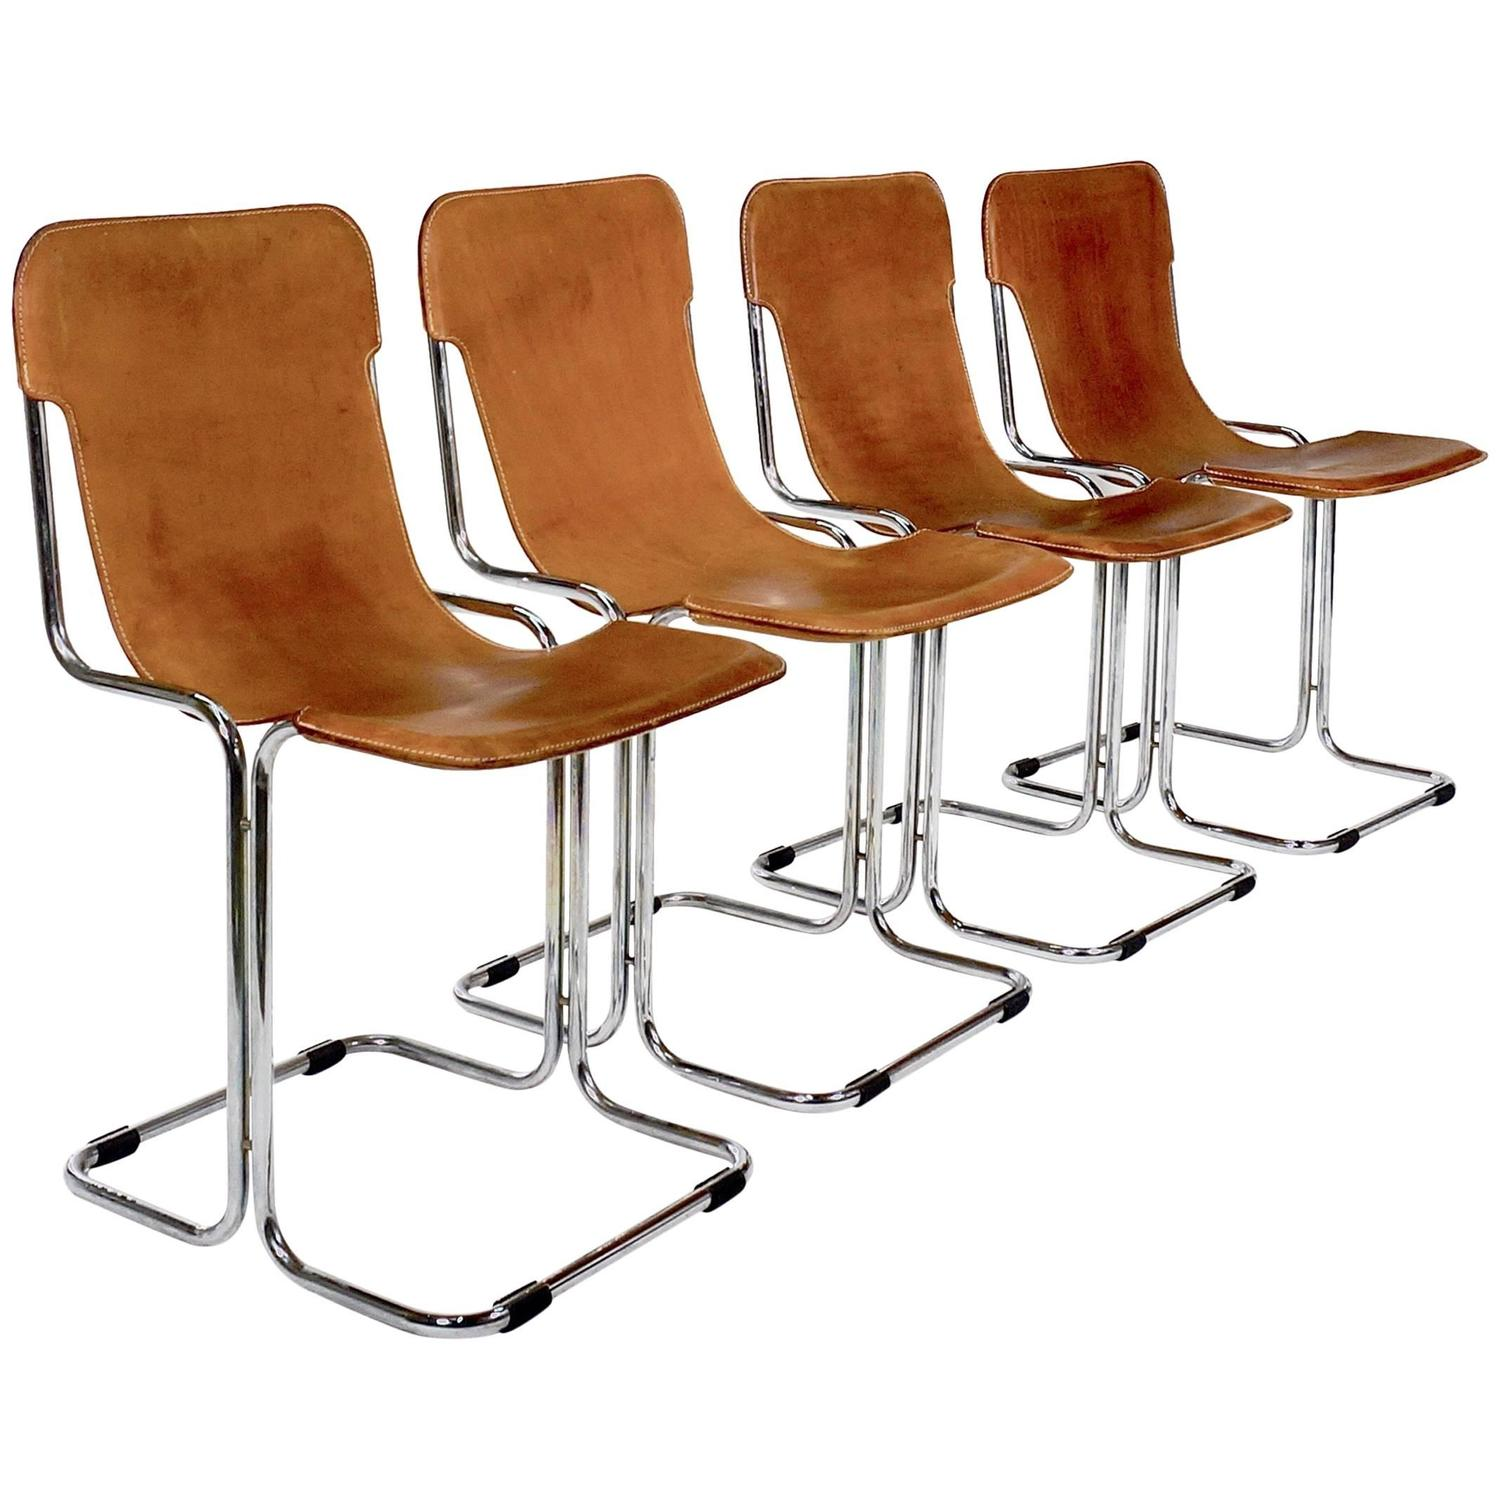 Klismos chair drawing - Set Of Four Chromed Tubular Metal Chairs With Slung Leather Seats